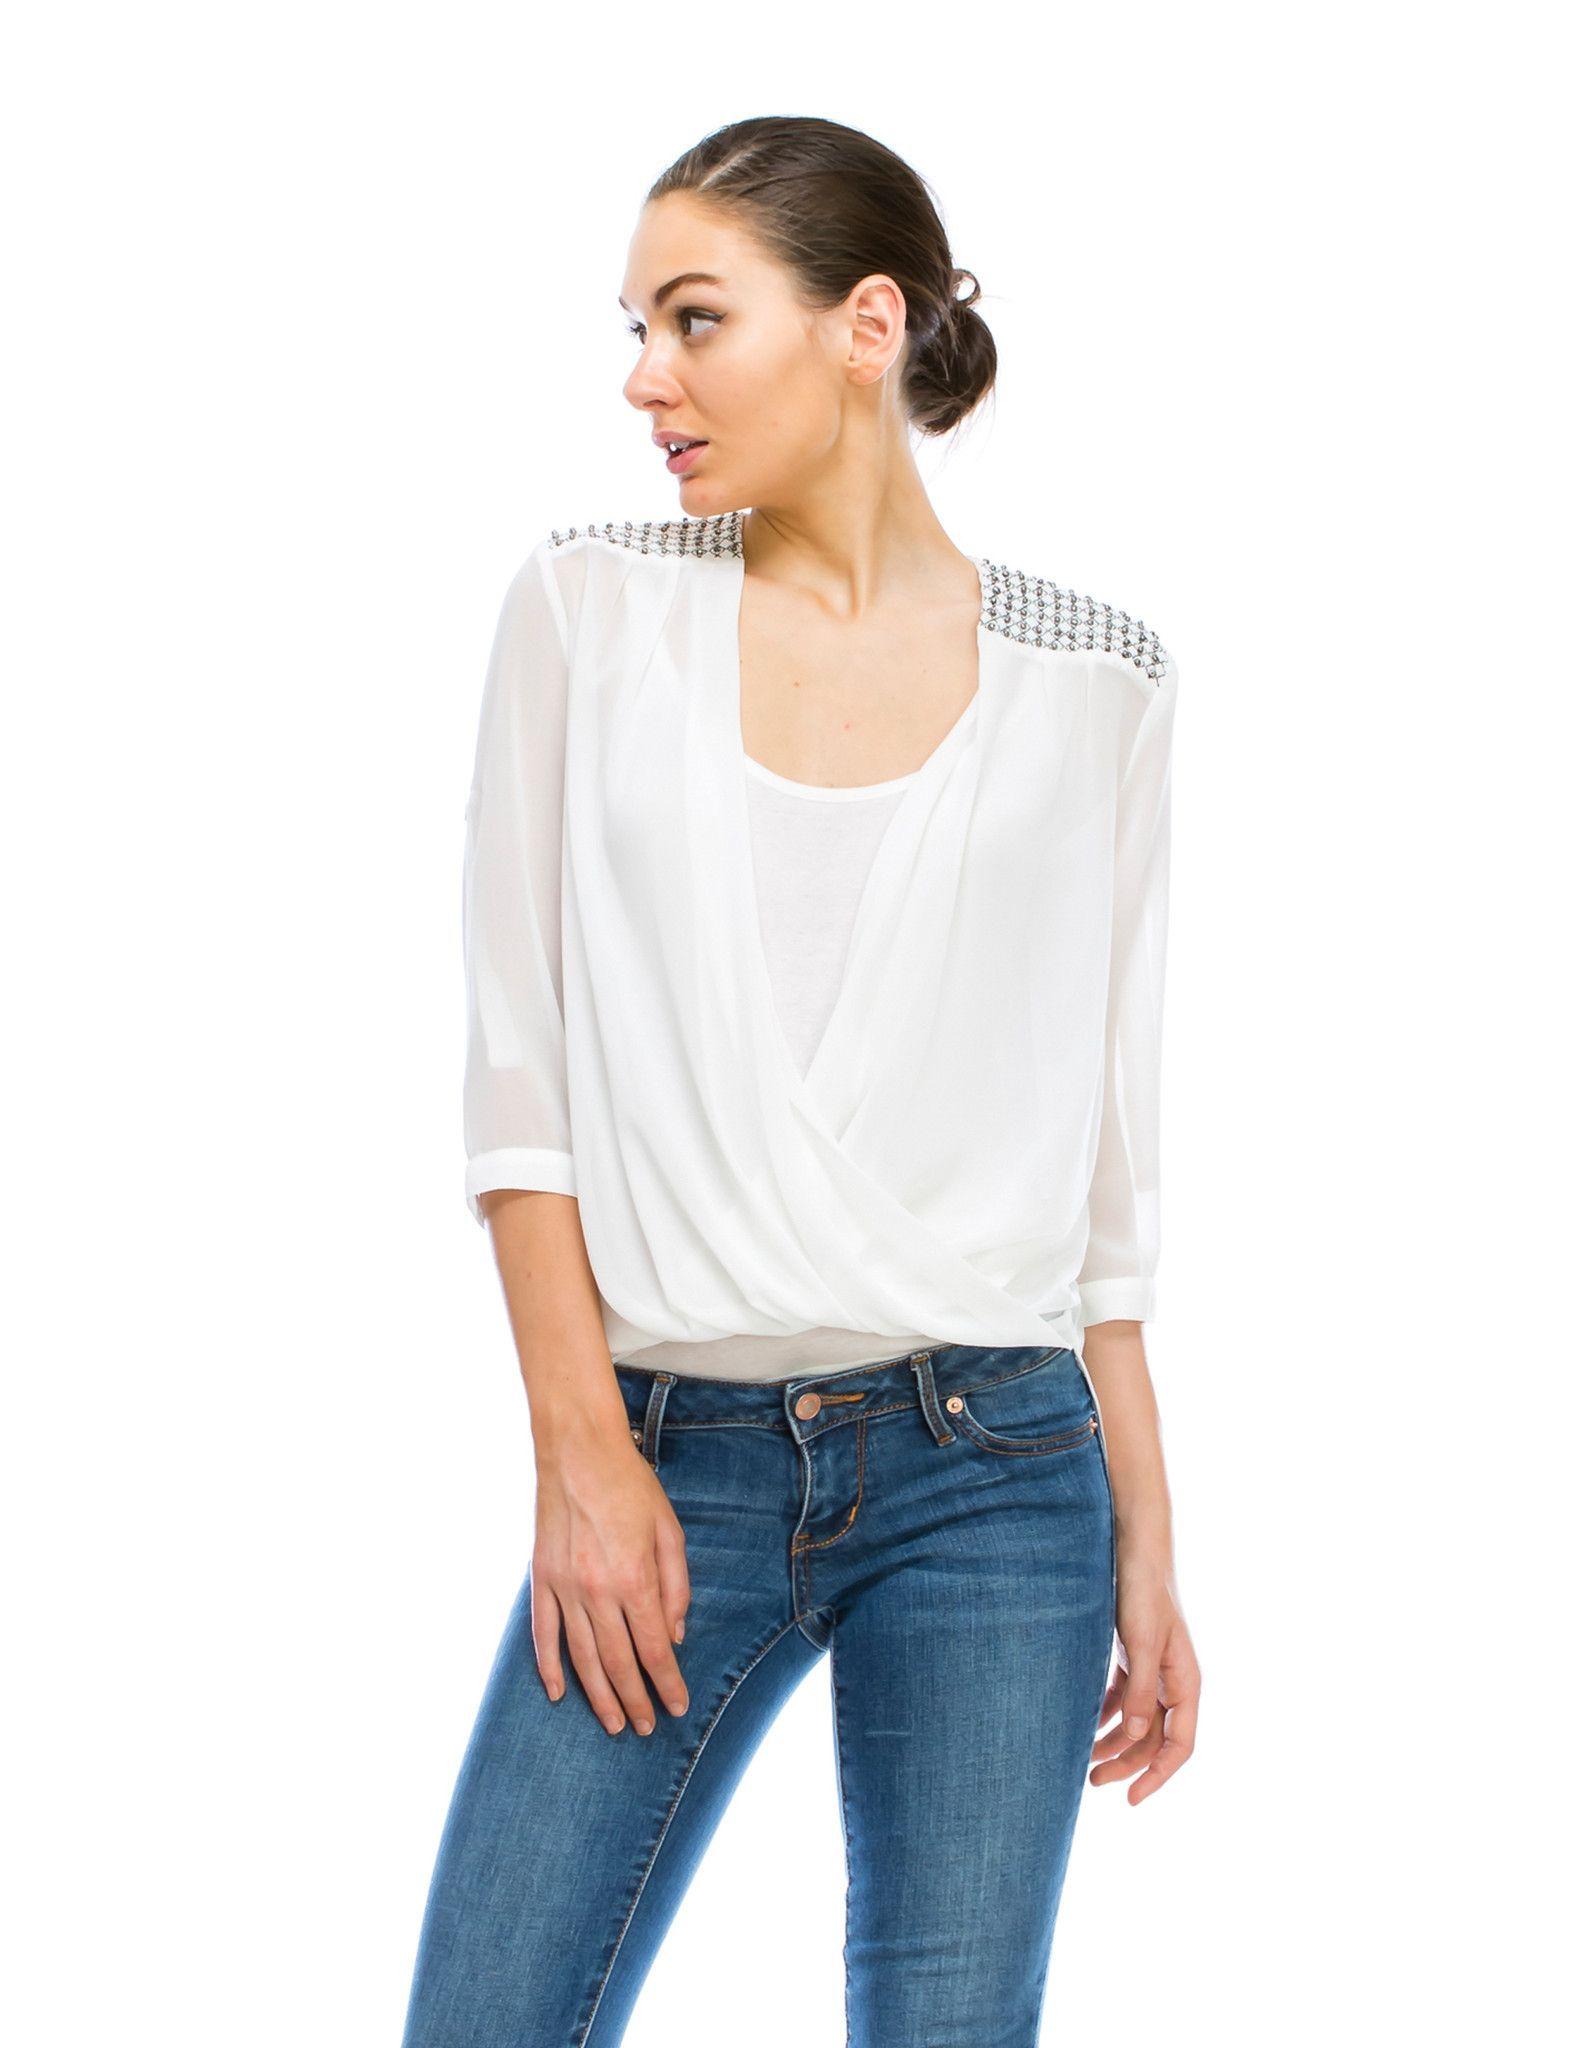 Blouse With Shoulder Trim